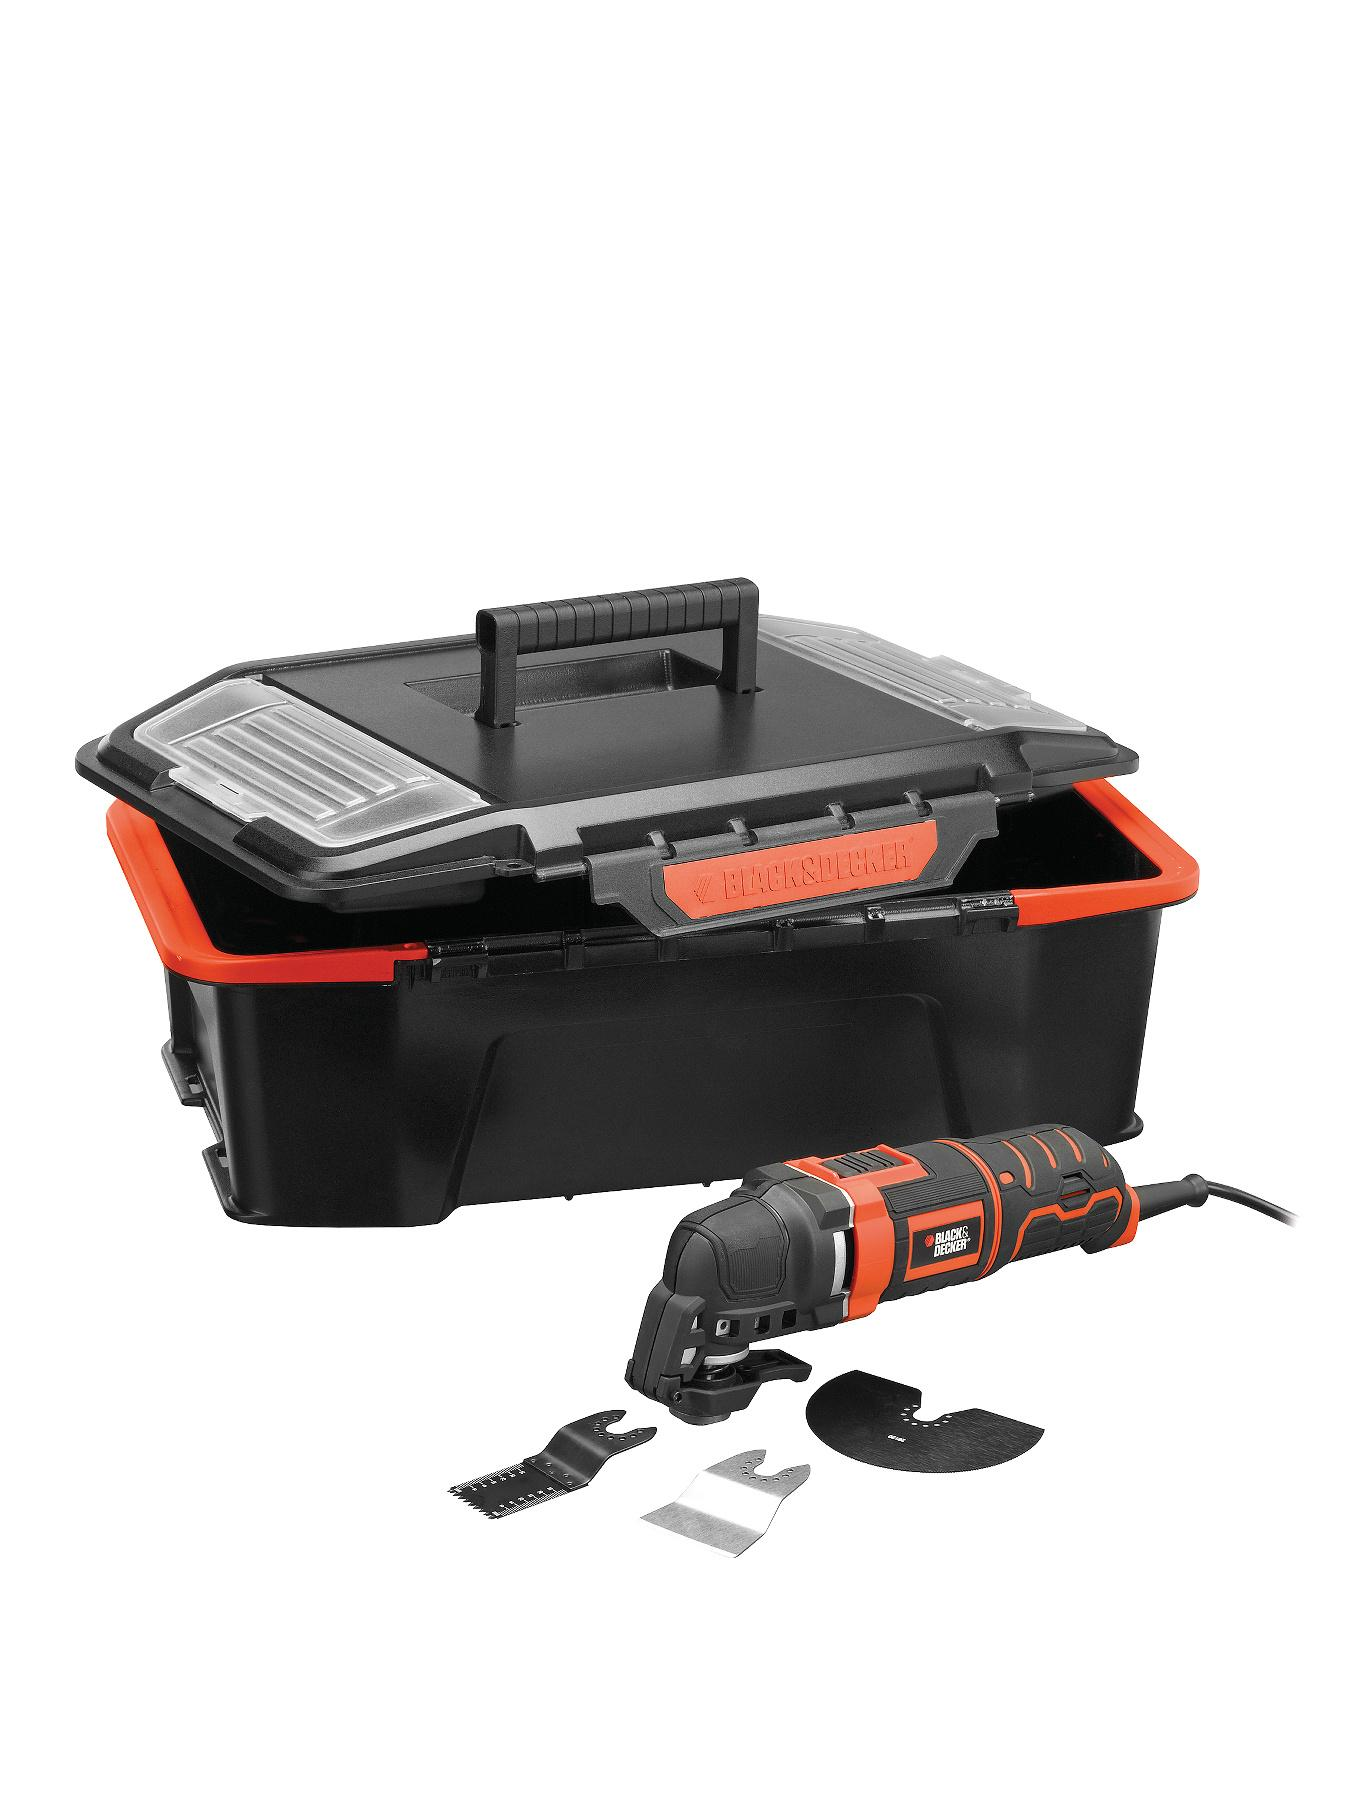 Black & Decker MT300AST2-GB 300 Watt Oscillating Multi Tool